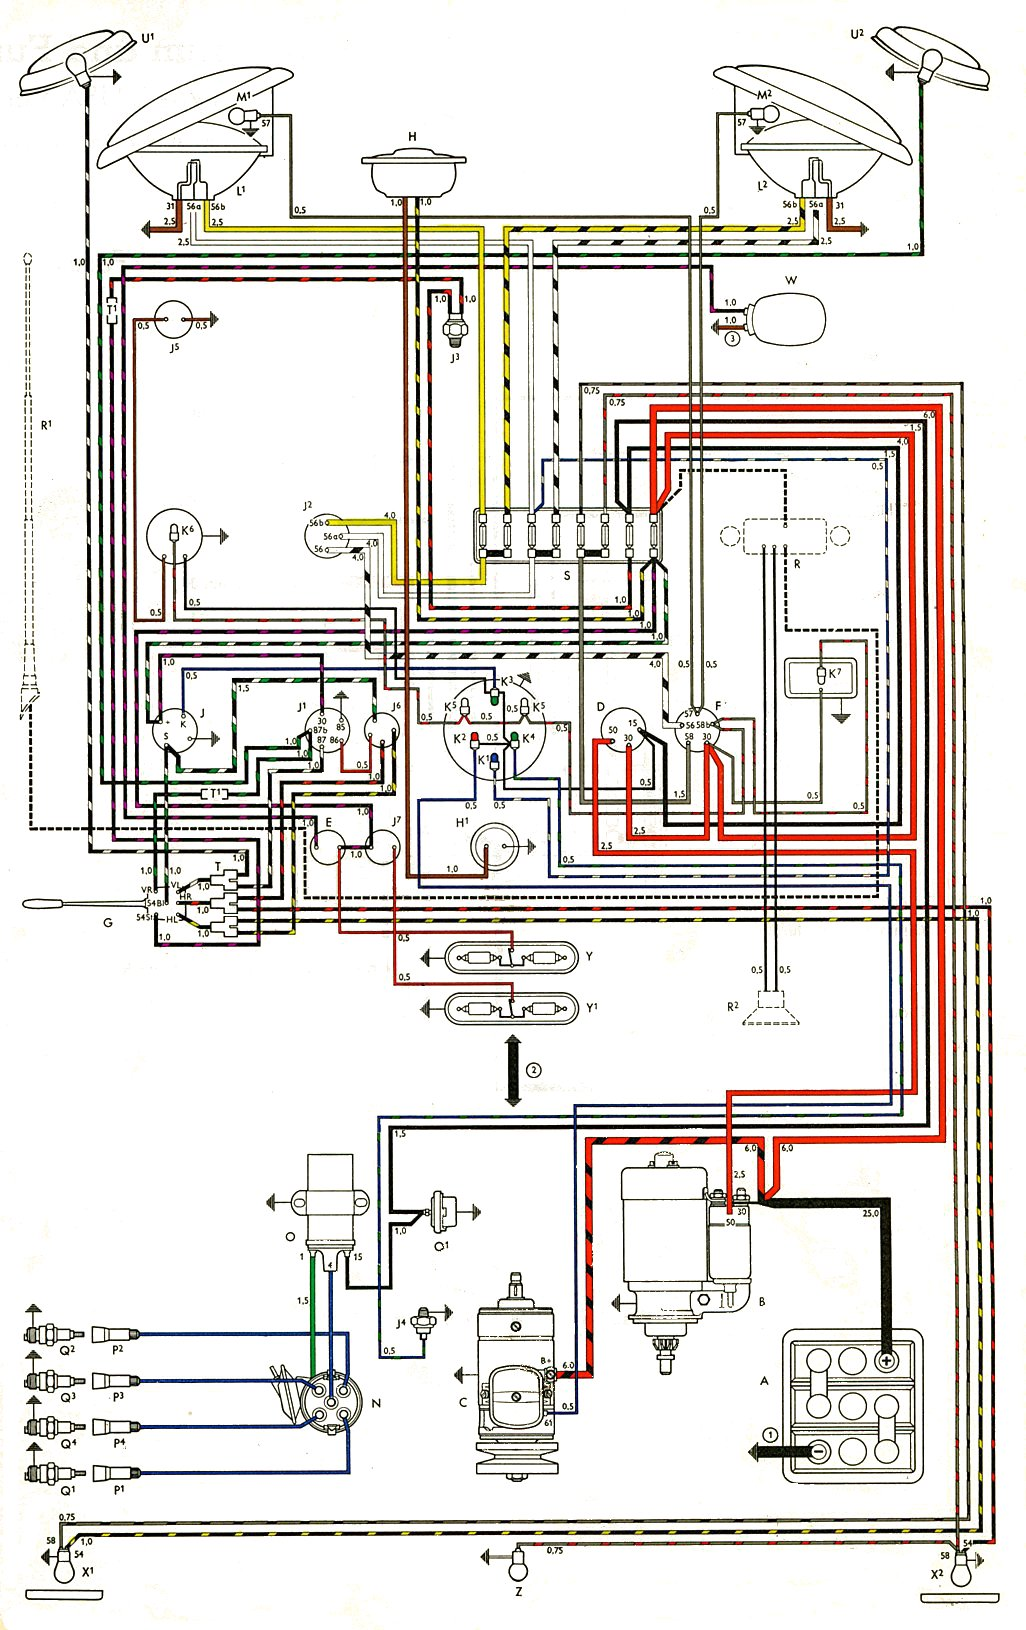 bus_63_USA thesamba com type 2 wiring diagrams Electrical Wiring Diagrams at eliteediting.co